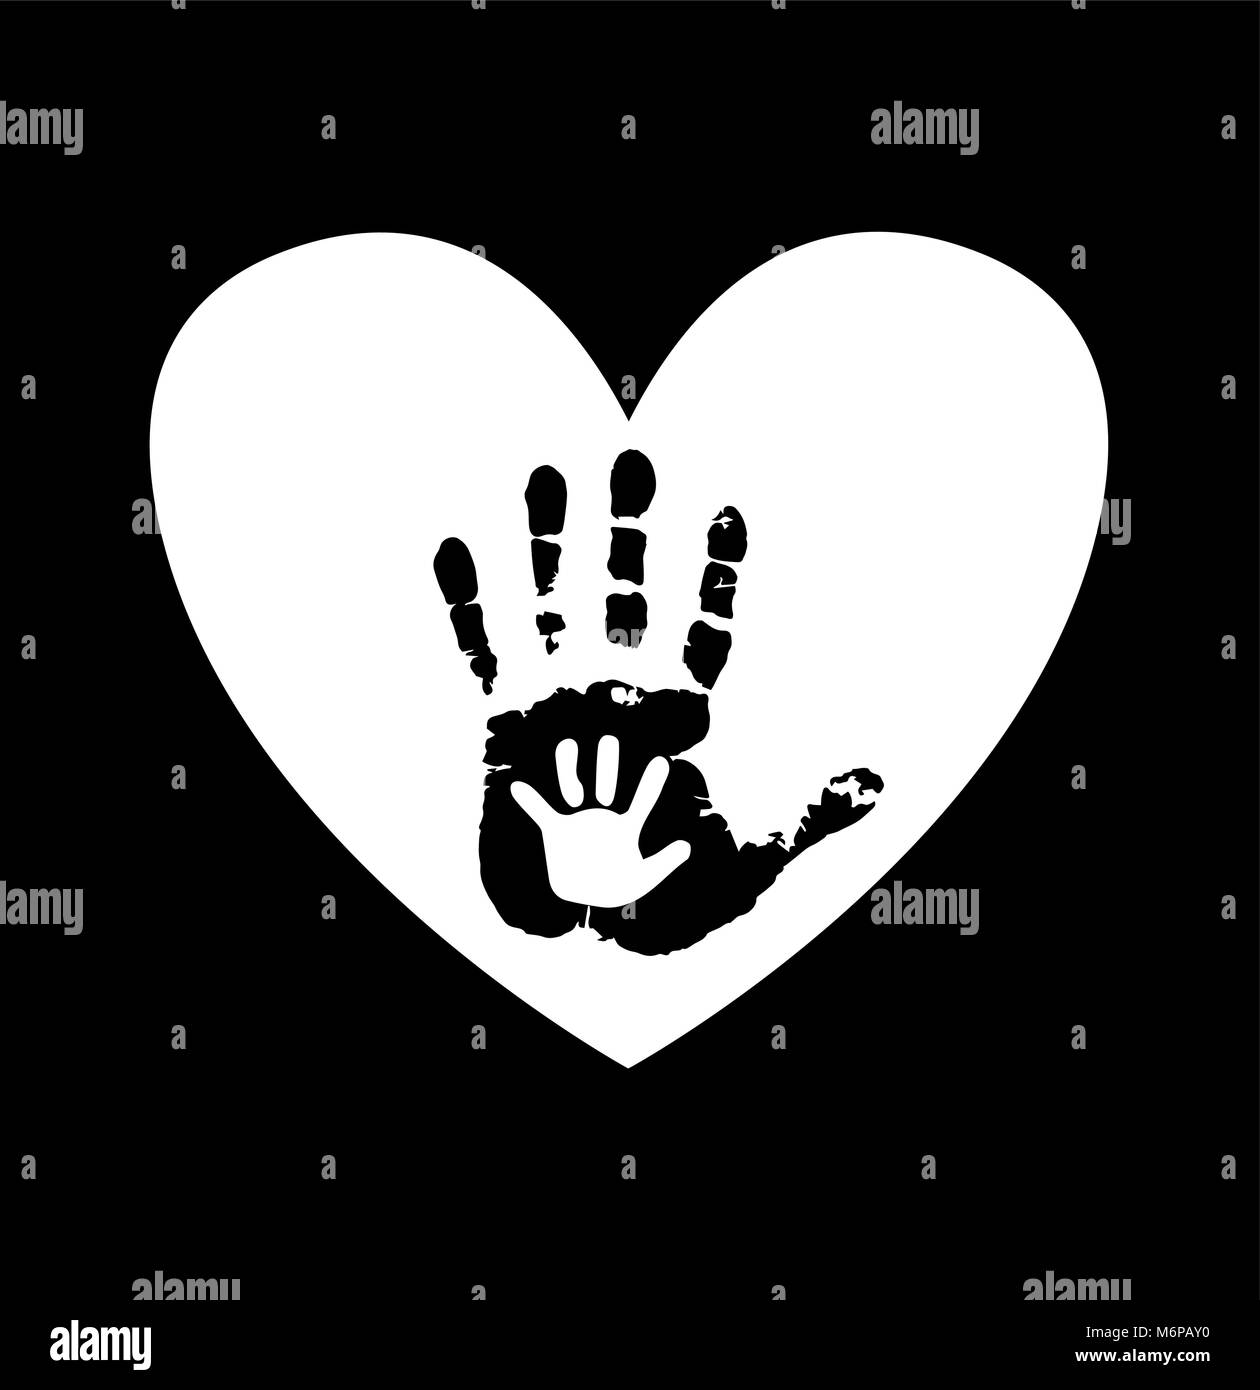 Black And White Silhouette Of Adult Baby Hands In Heart Mother Or Father Child Handprint Palm Parent Social Illustration Idea O